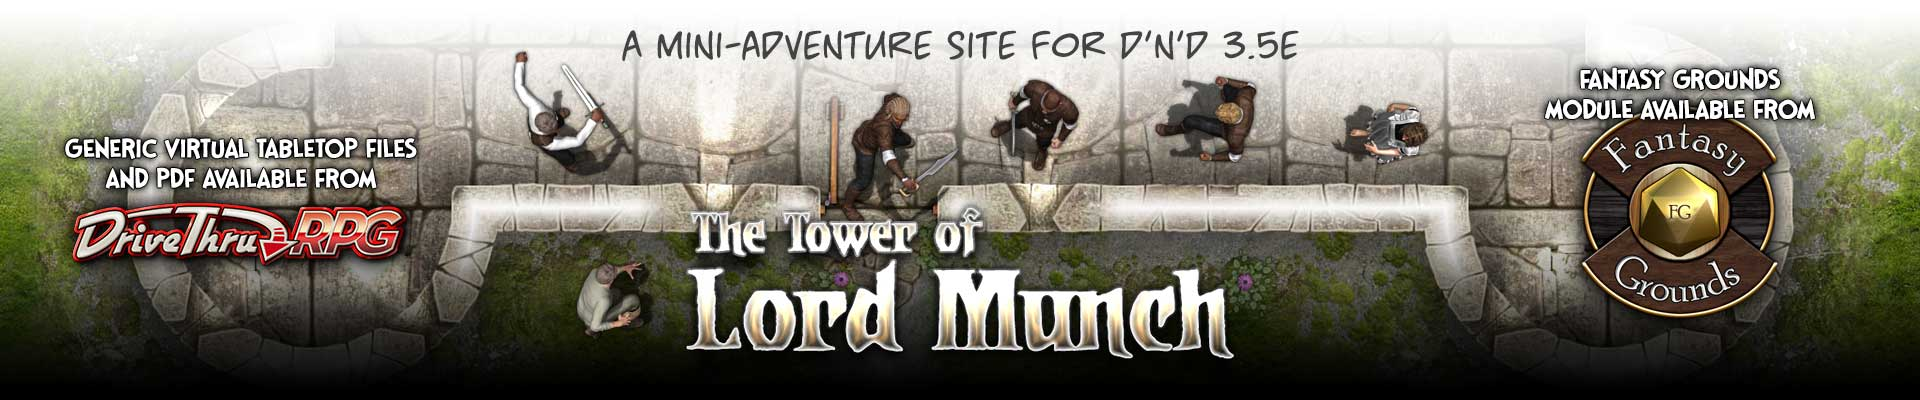 The Tower Lord Munch - A D&D Mini-adventure